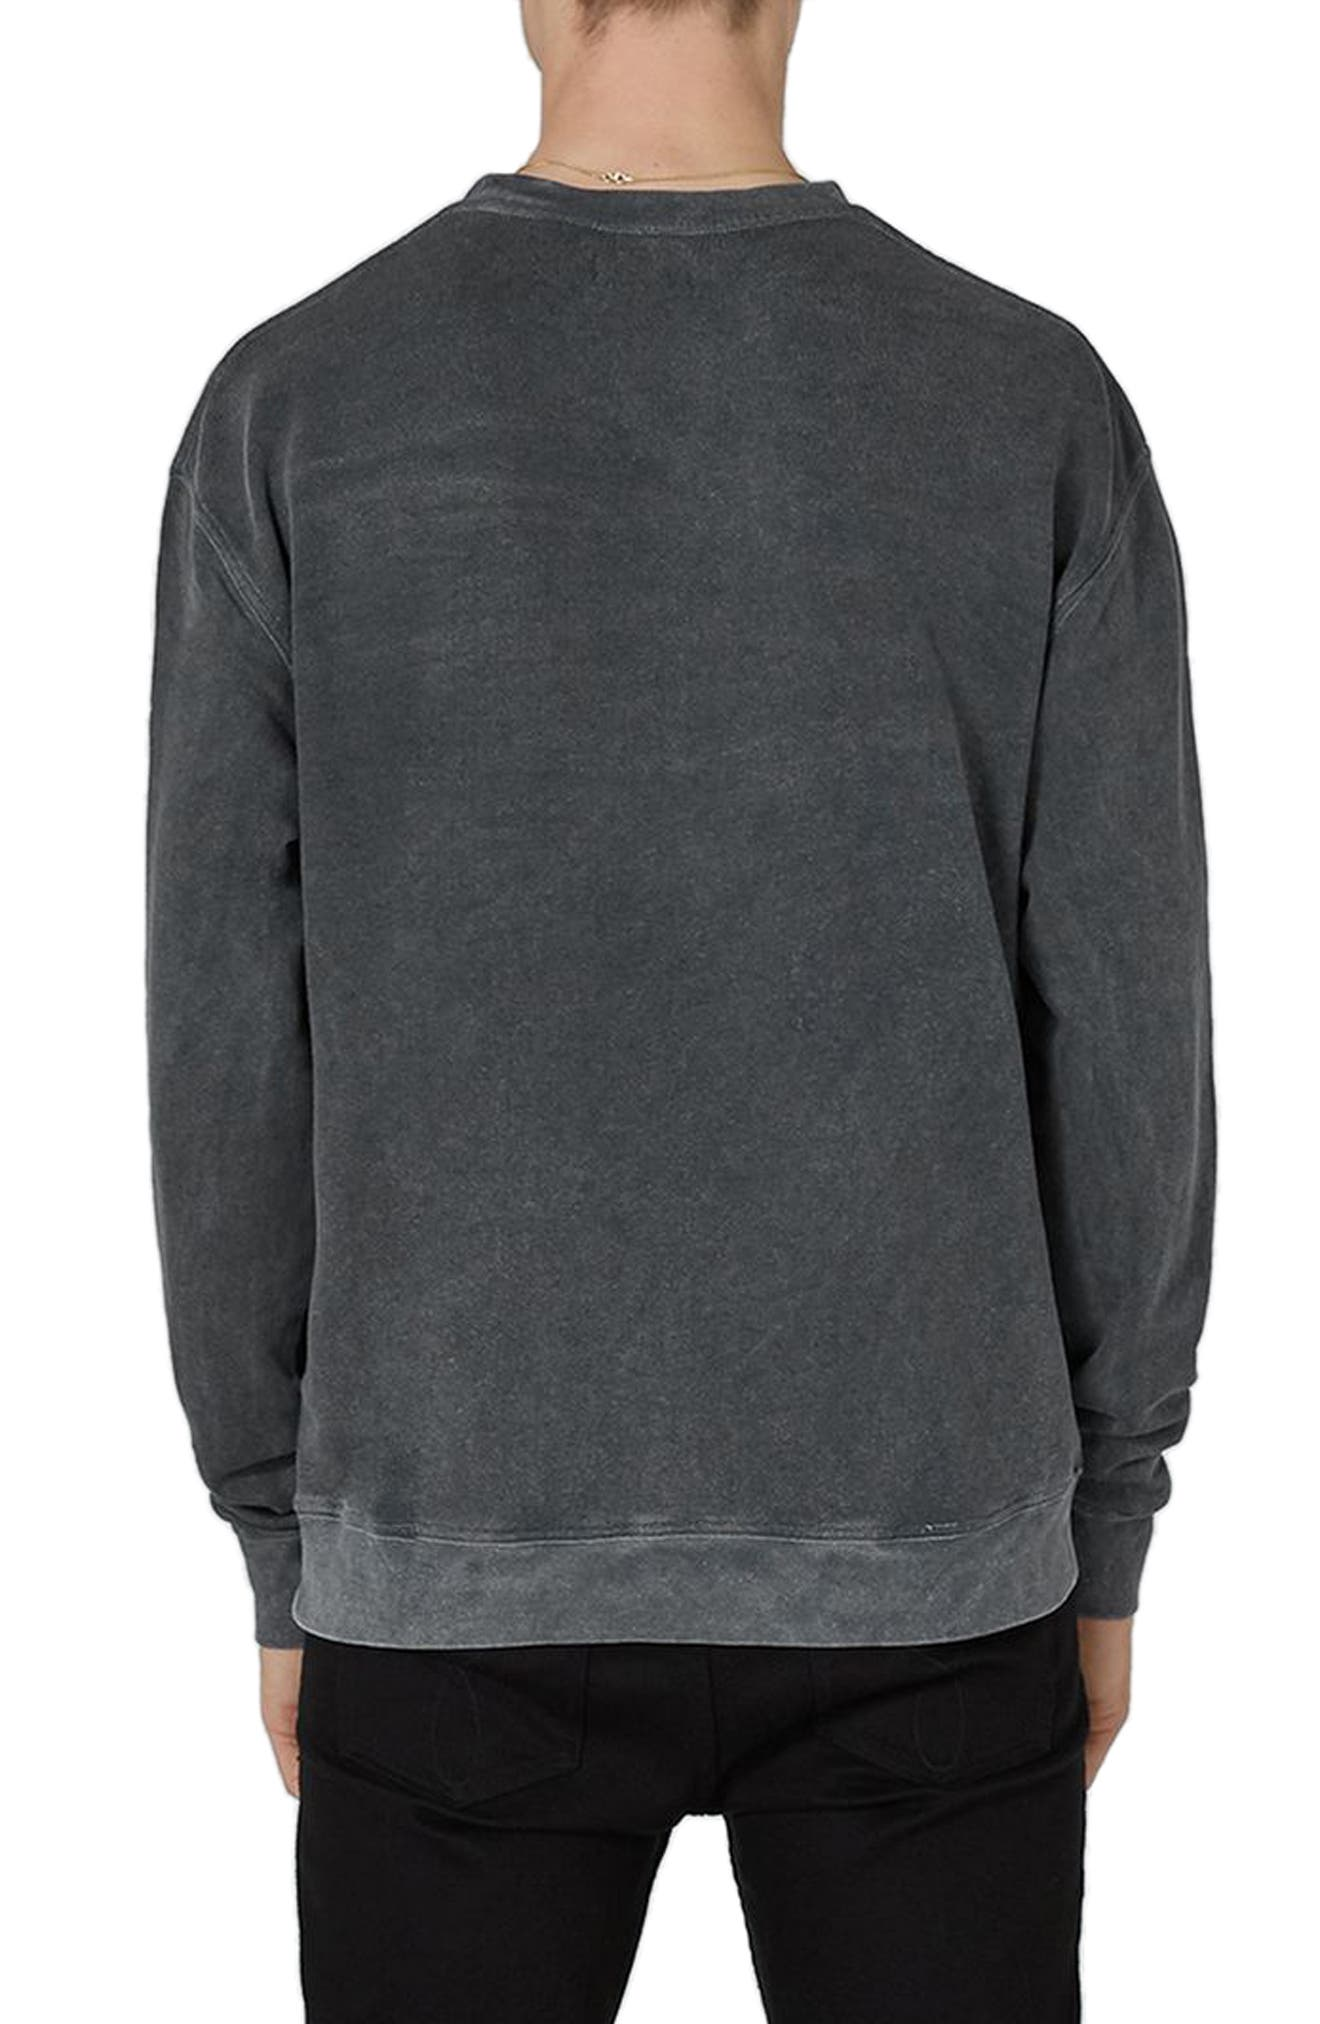 Percy Rose Embroidered Sweatshirt,                             Alternate thumbnail 2, color,                             020